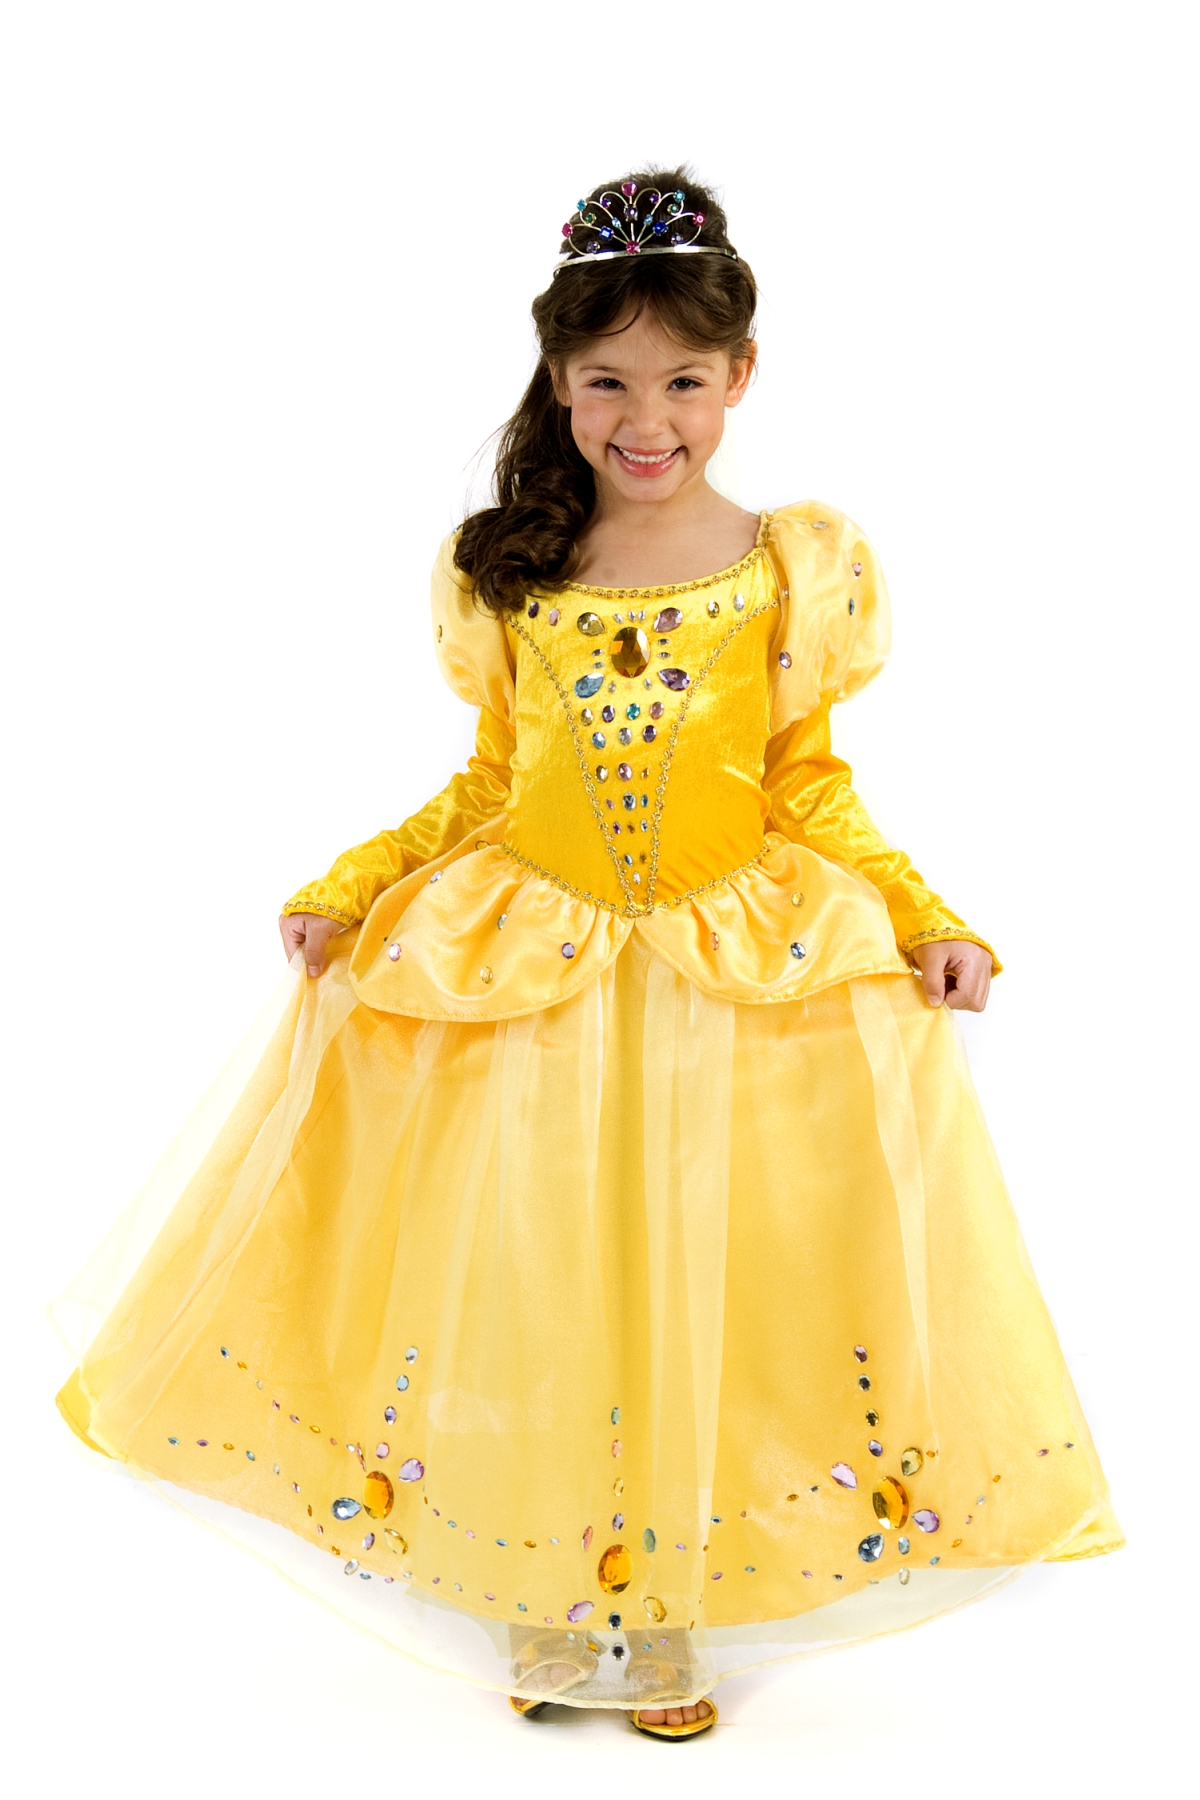 Princess Belle Costume for GirlsPrincess Belle Costume